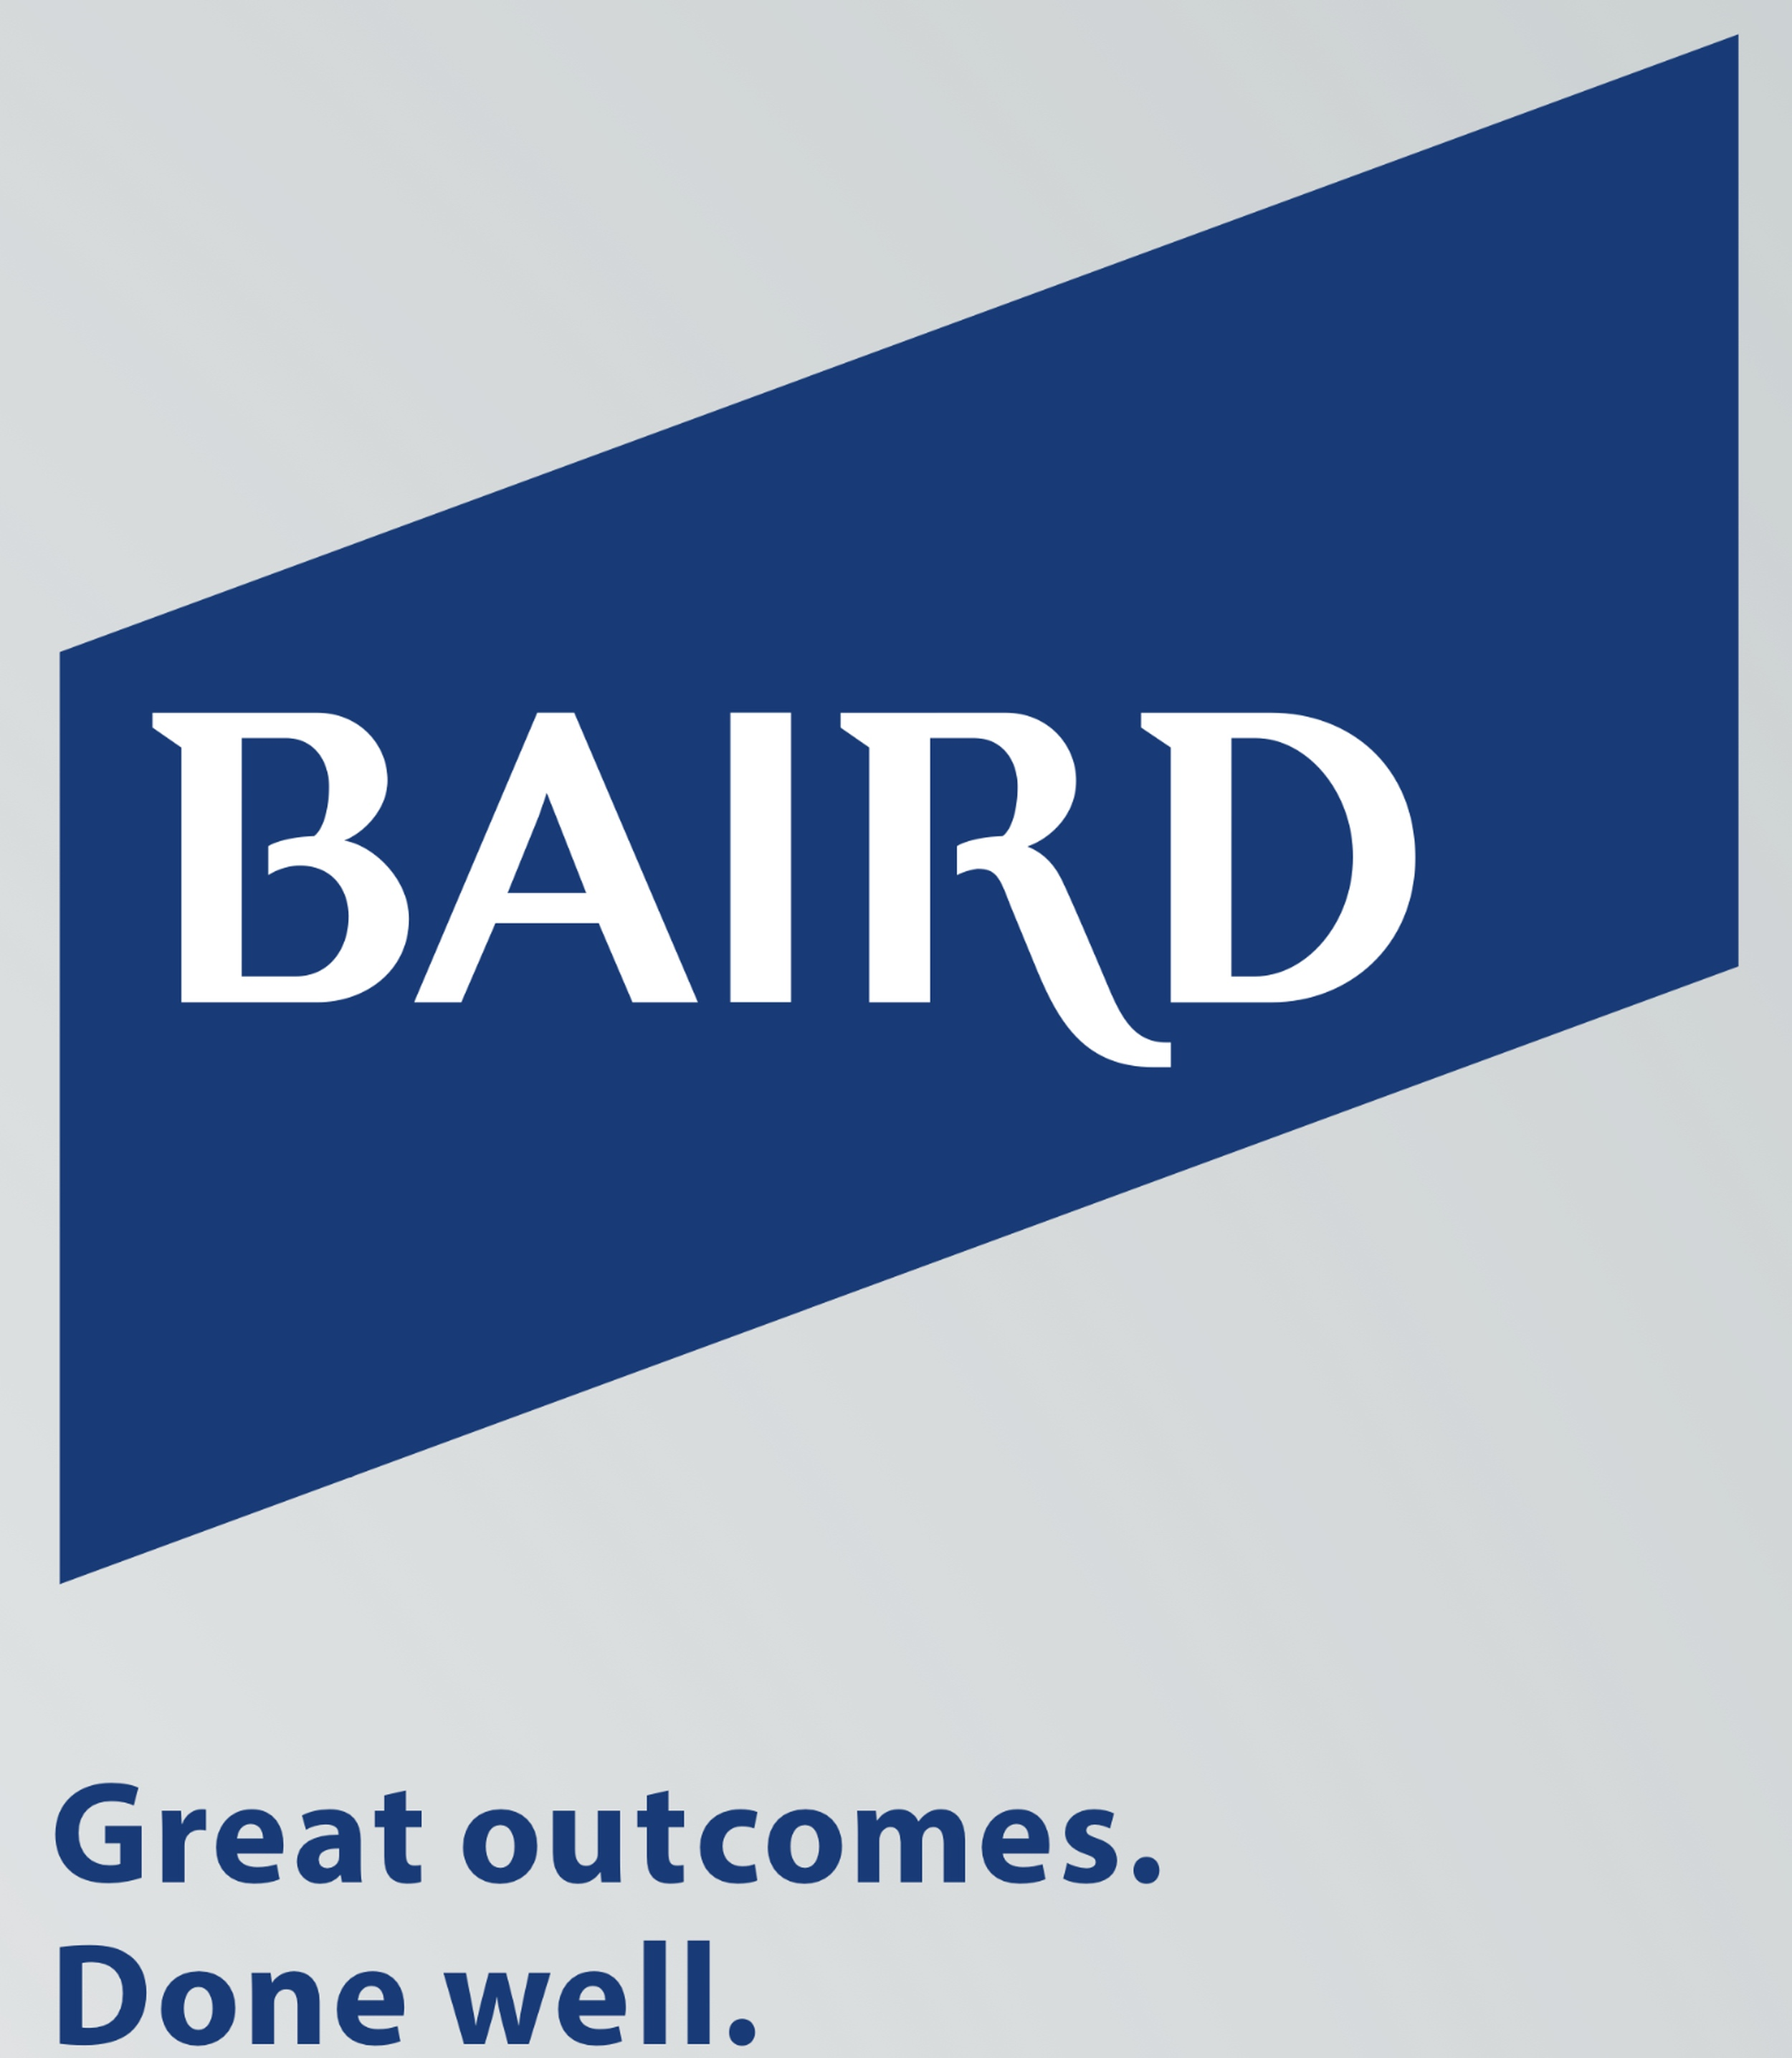 Baird serves individuals, families, businesses and communities across the United States as well as institutional clients around the globe from more than 100 offices on three continents.